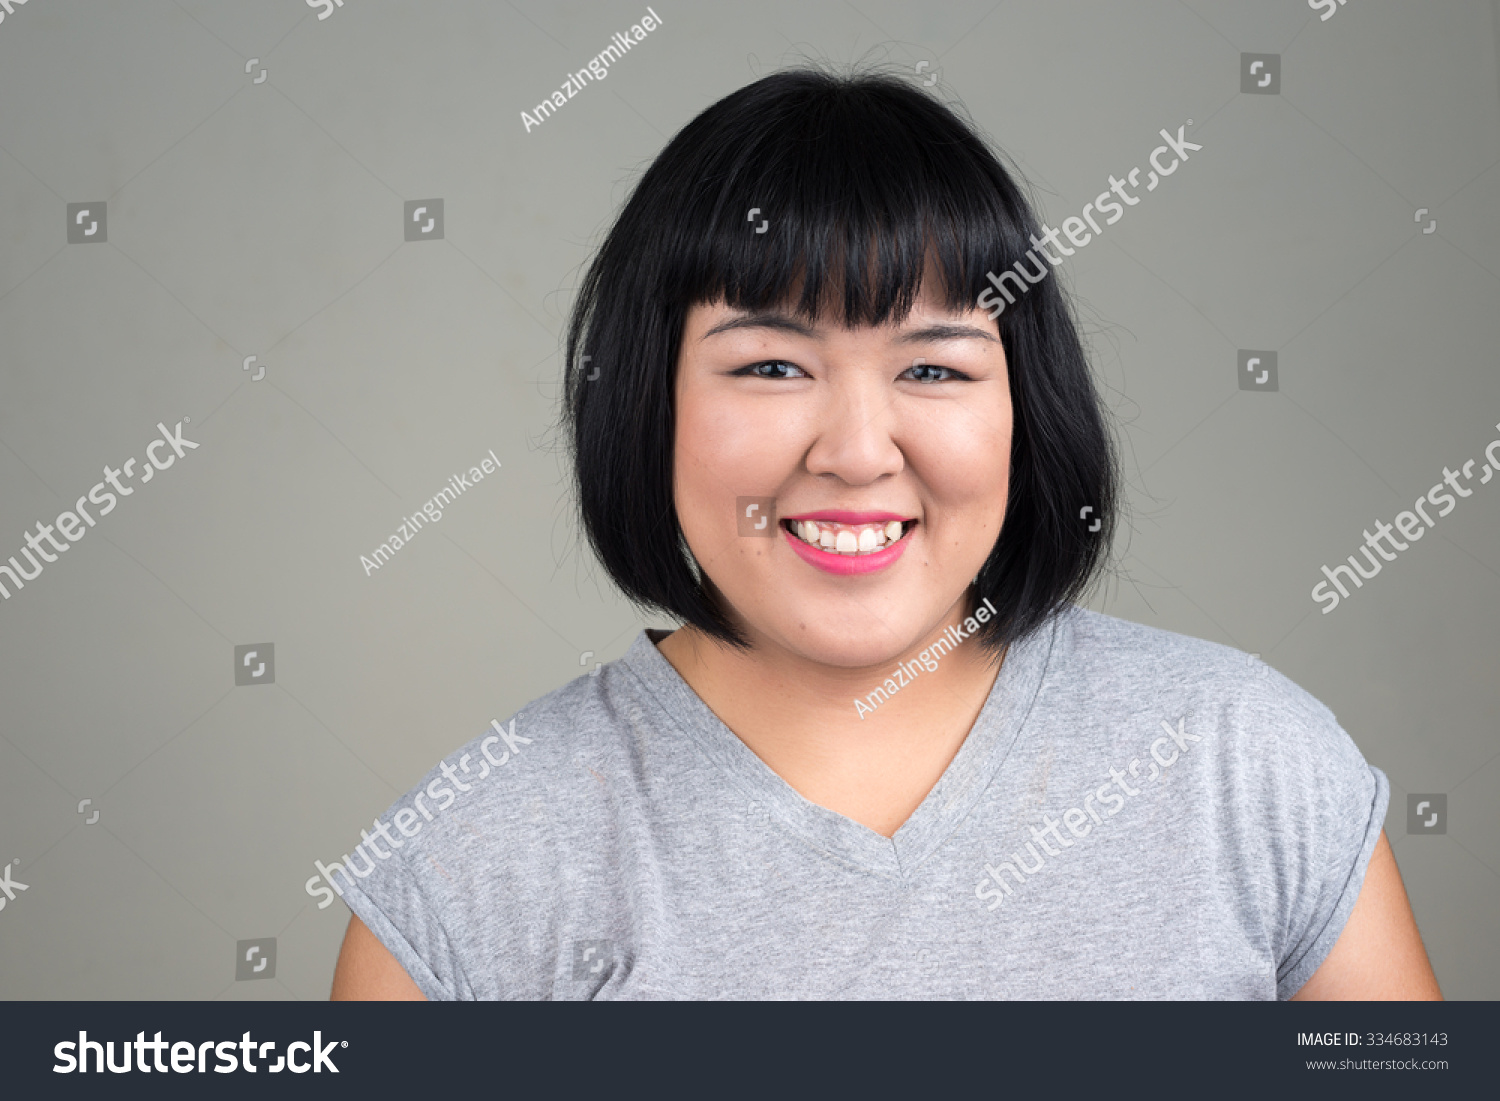 Fat Asian Pictures Jpg